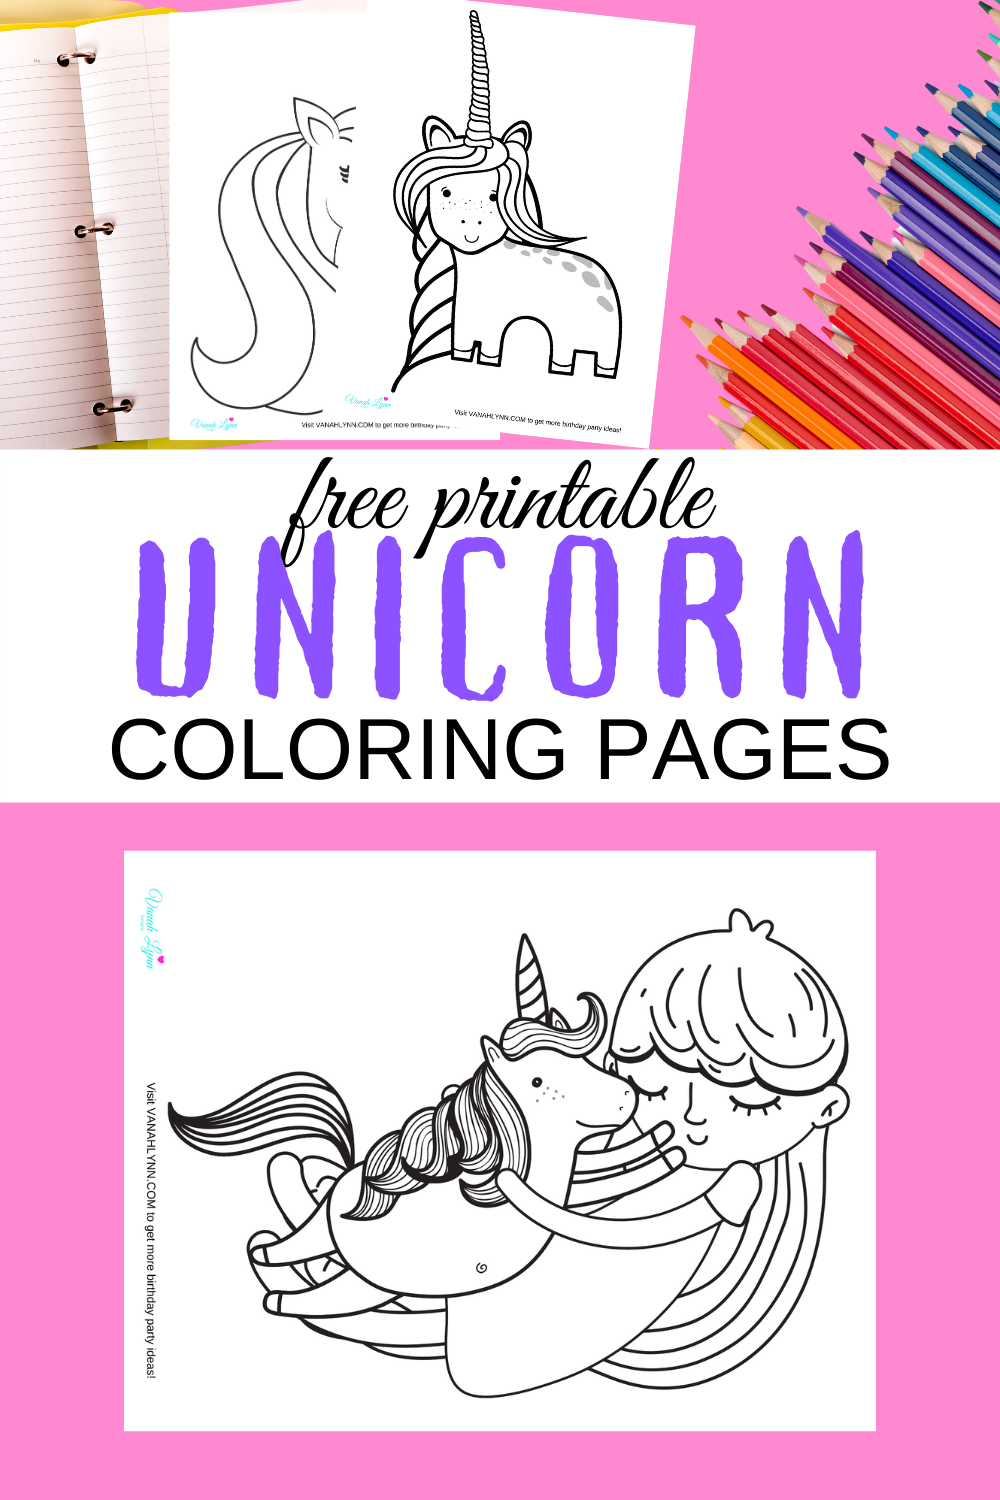 free printable unicorn coloring pages for toddlers